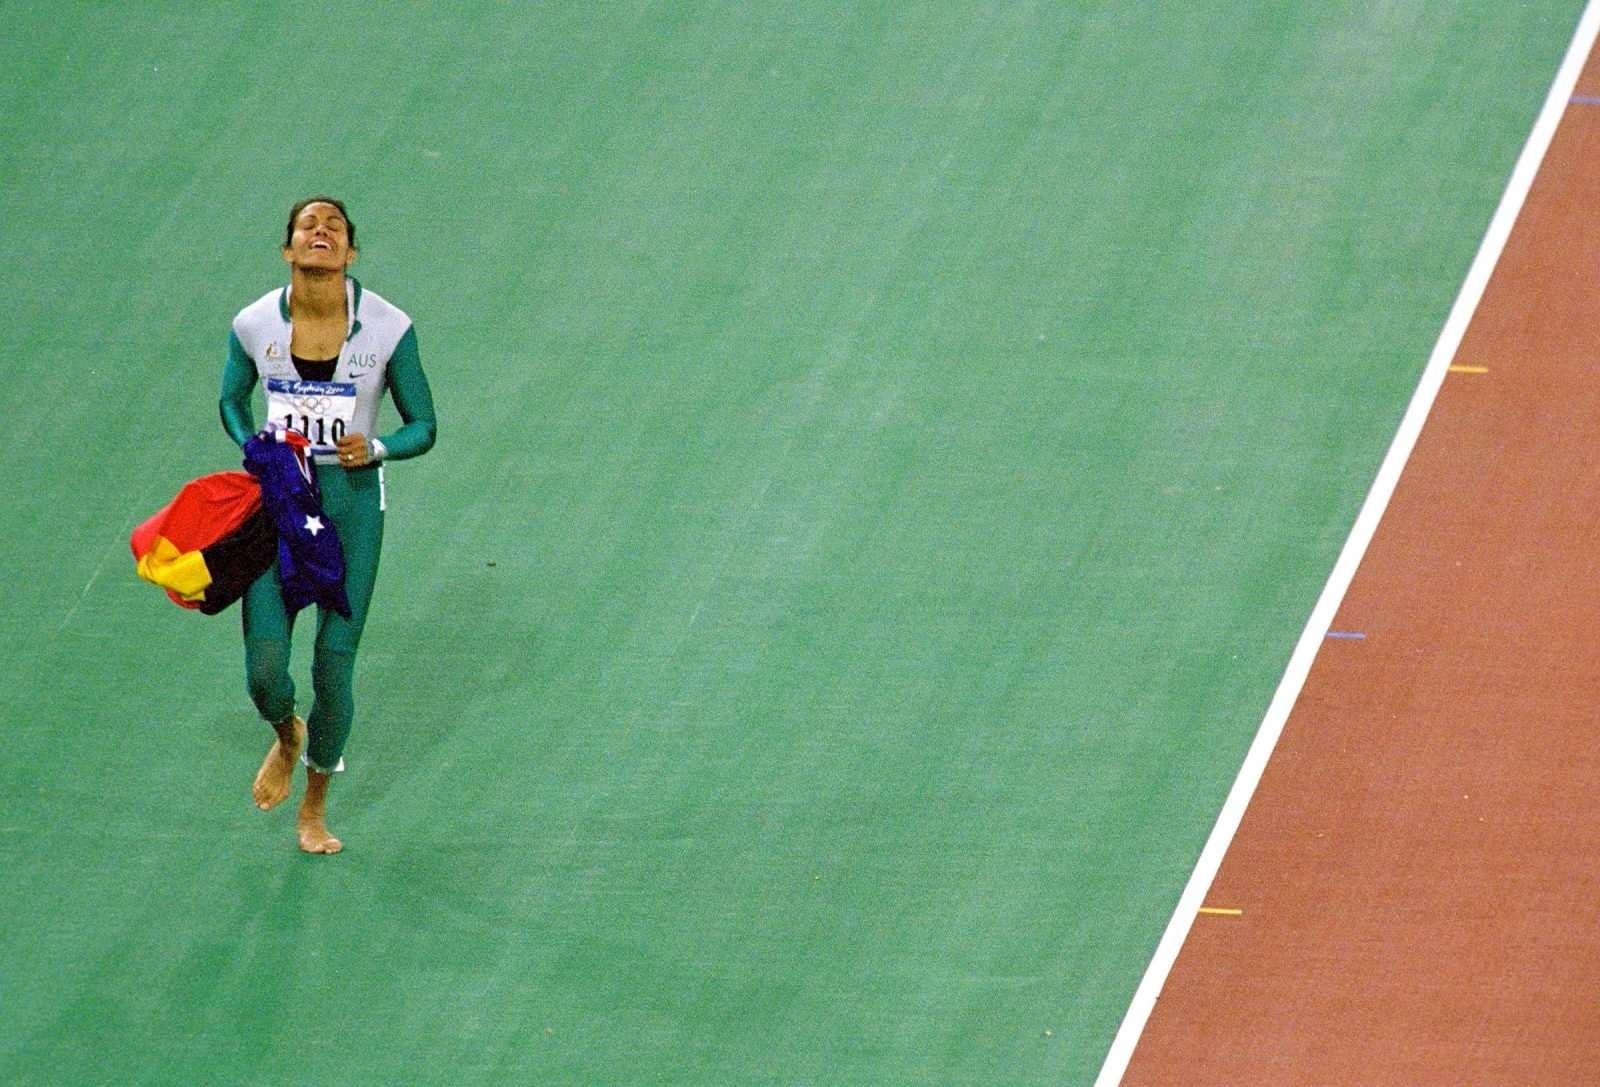 Cathy Freeman of Australia celebrates winning gold in the Womens 400m Final at Australia's Olympic Stadium during Sydney games in 2000